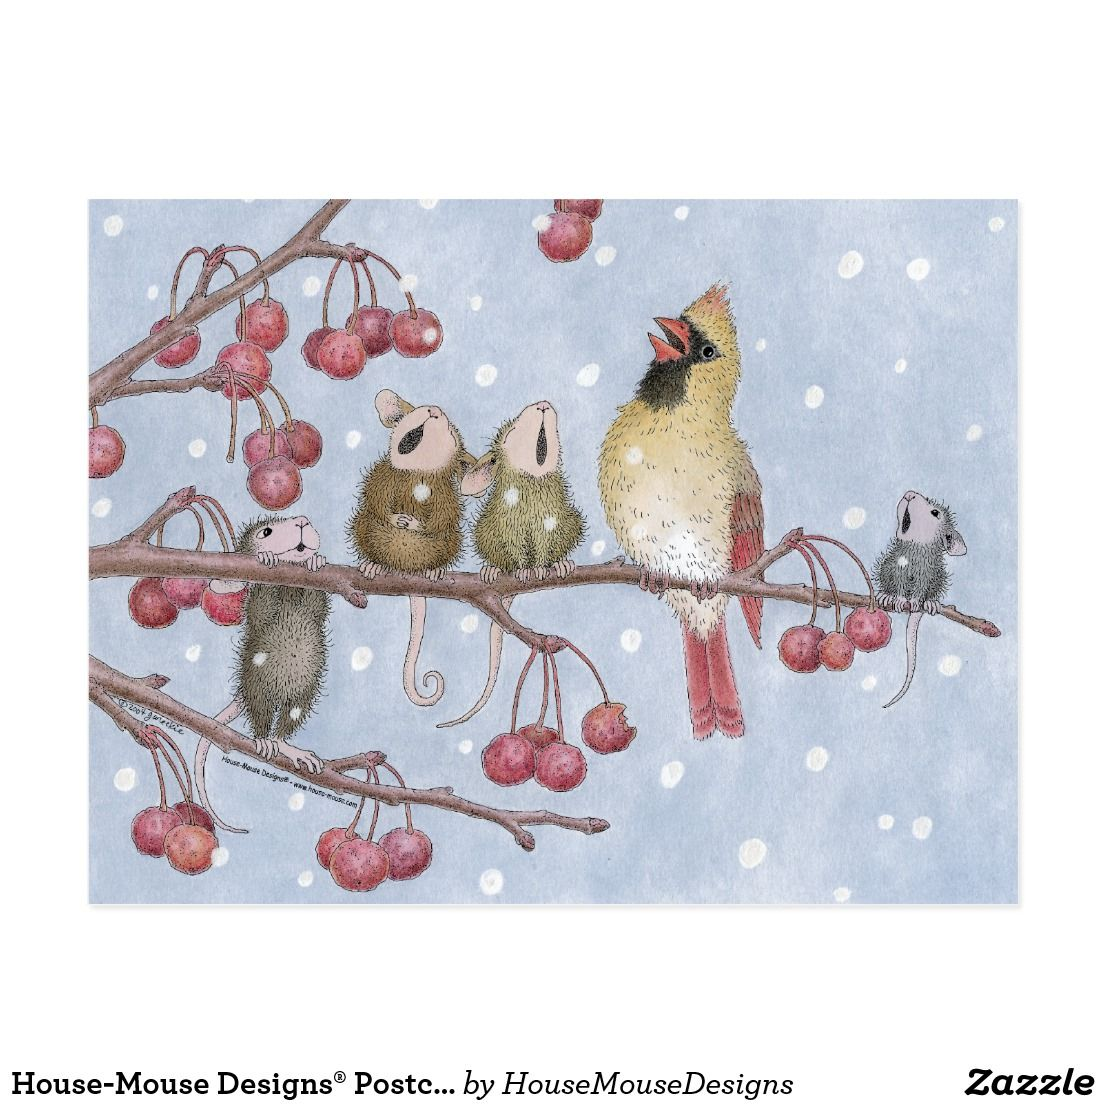 HouseMouse Designs® Postcard in 2020 House